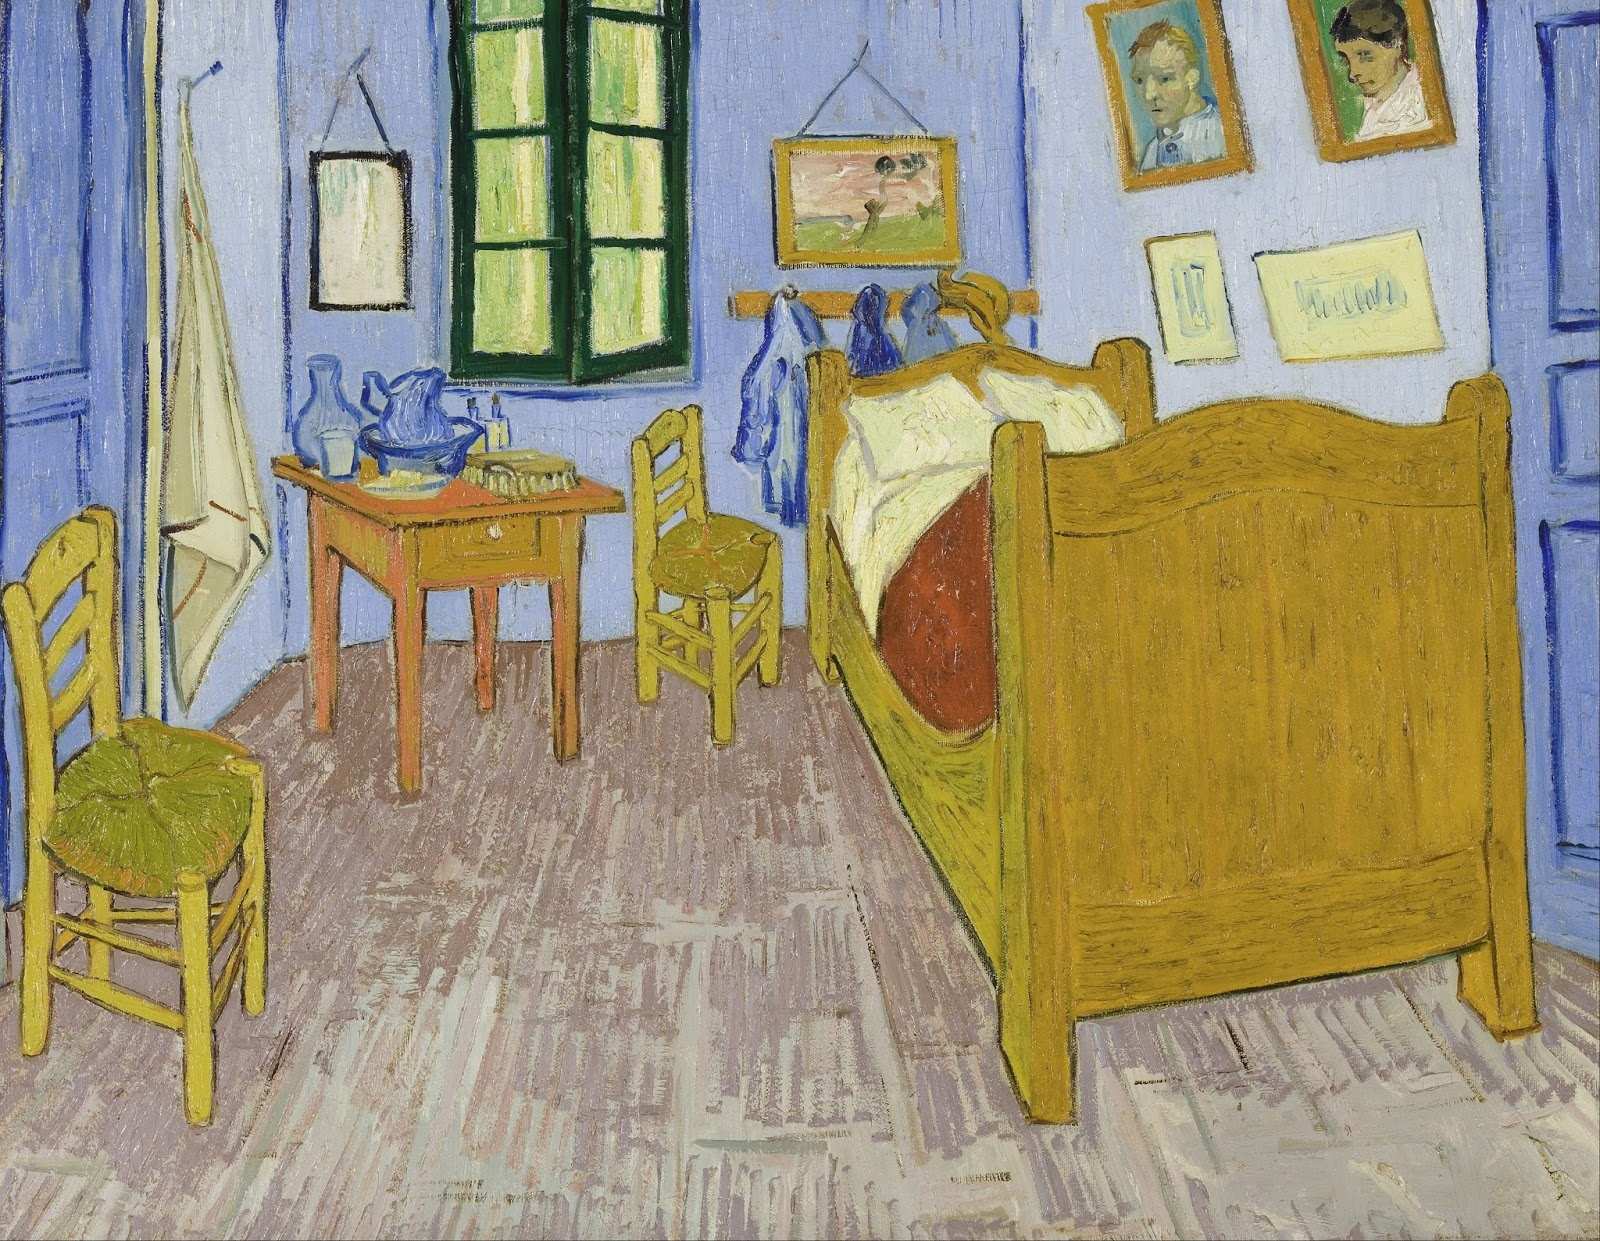 Make A Mark: Bedroom Dioramas inspired by Vincent Van Gogh